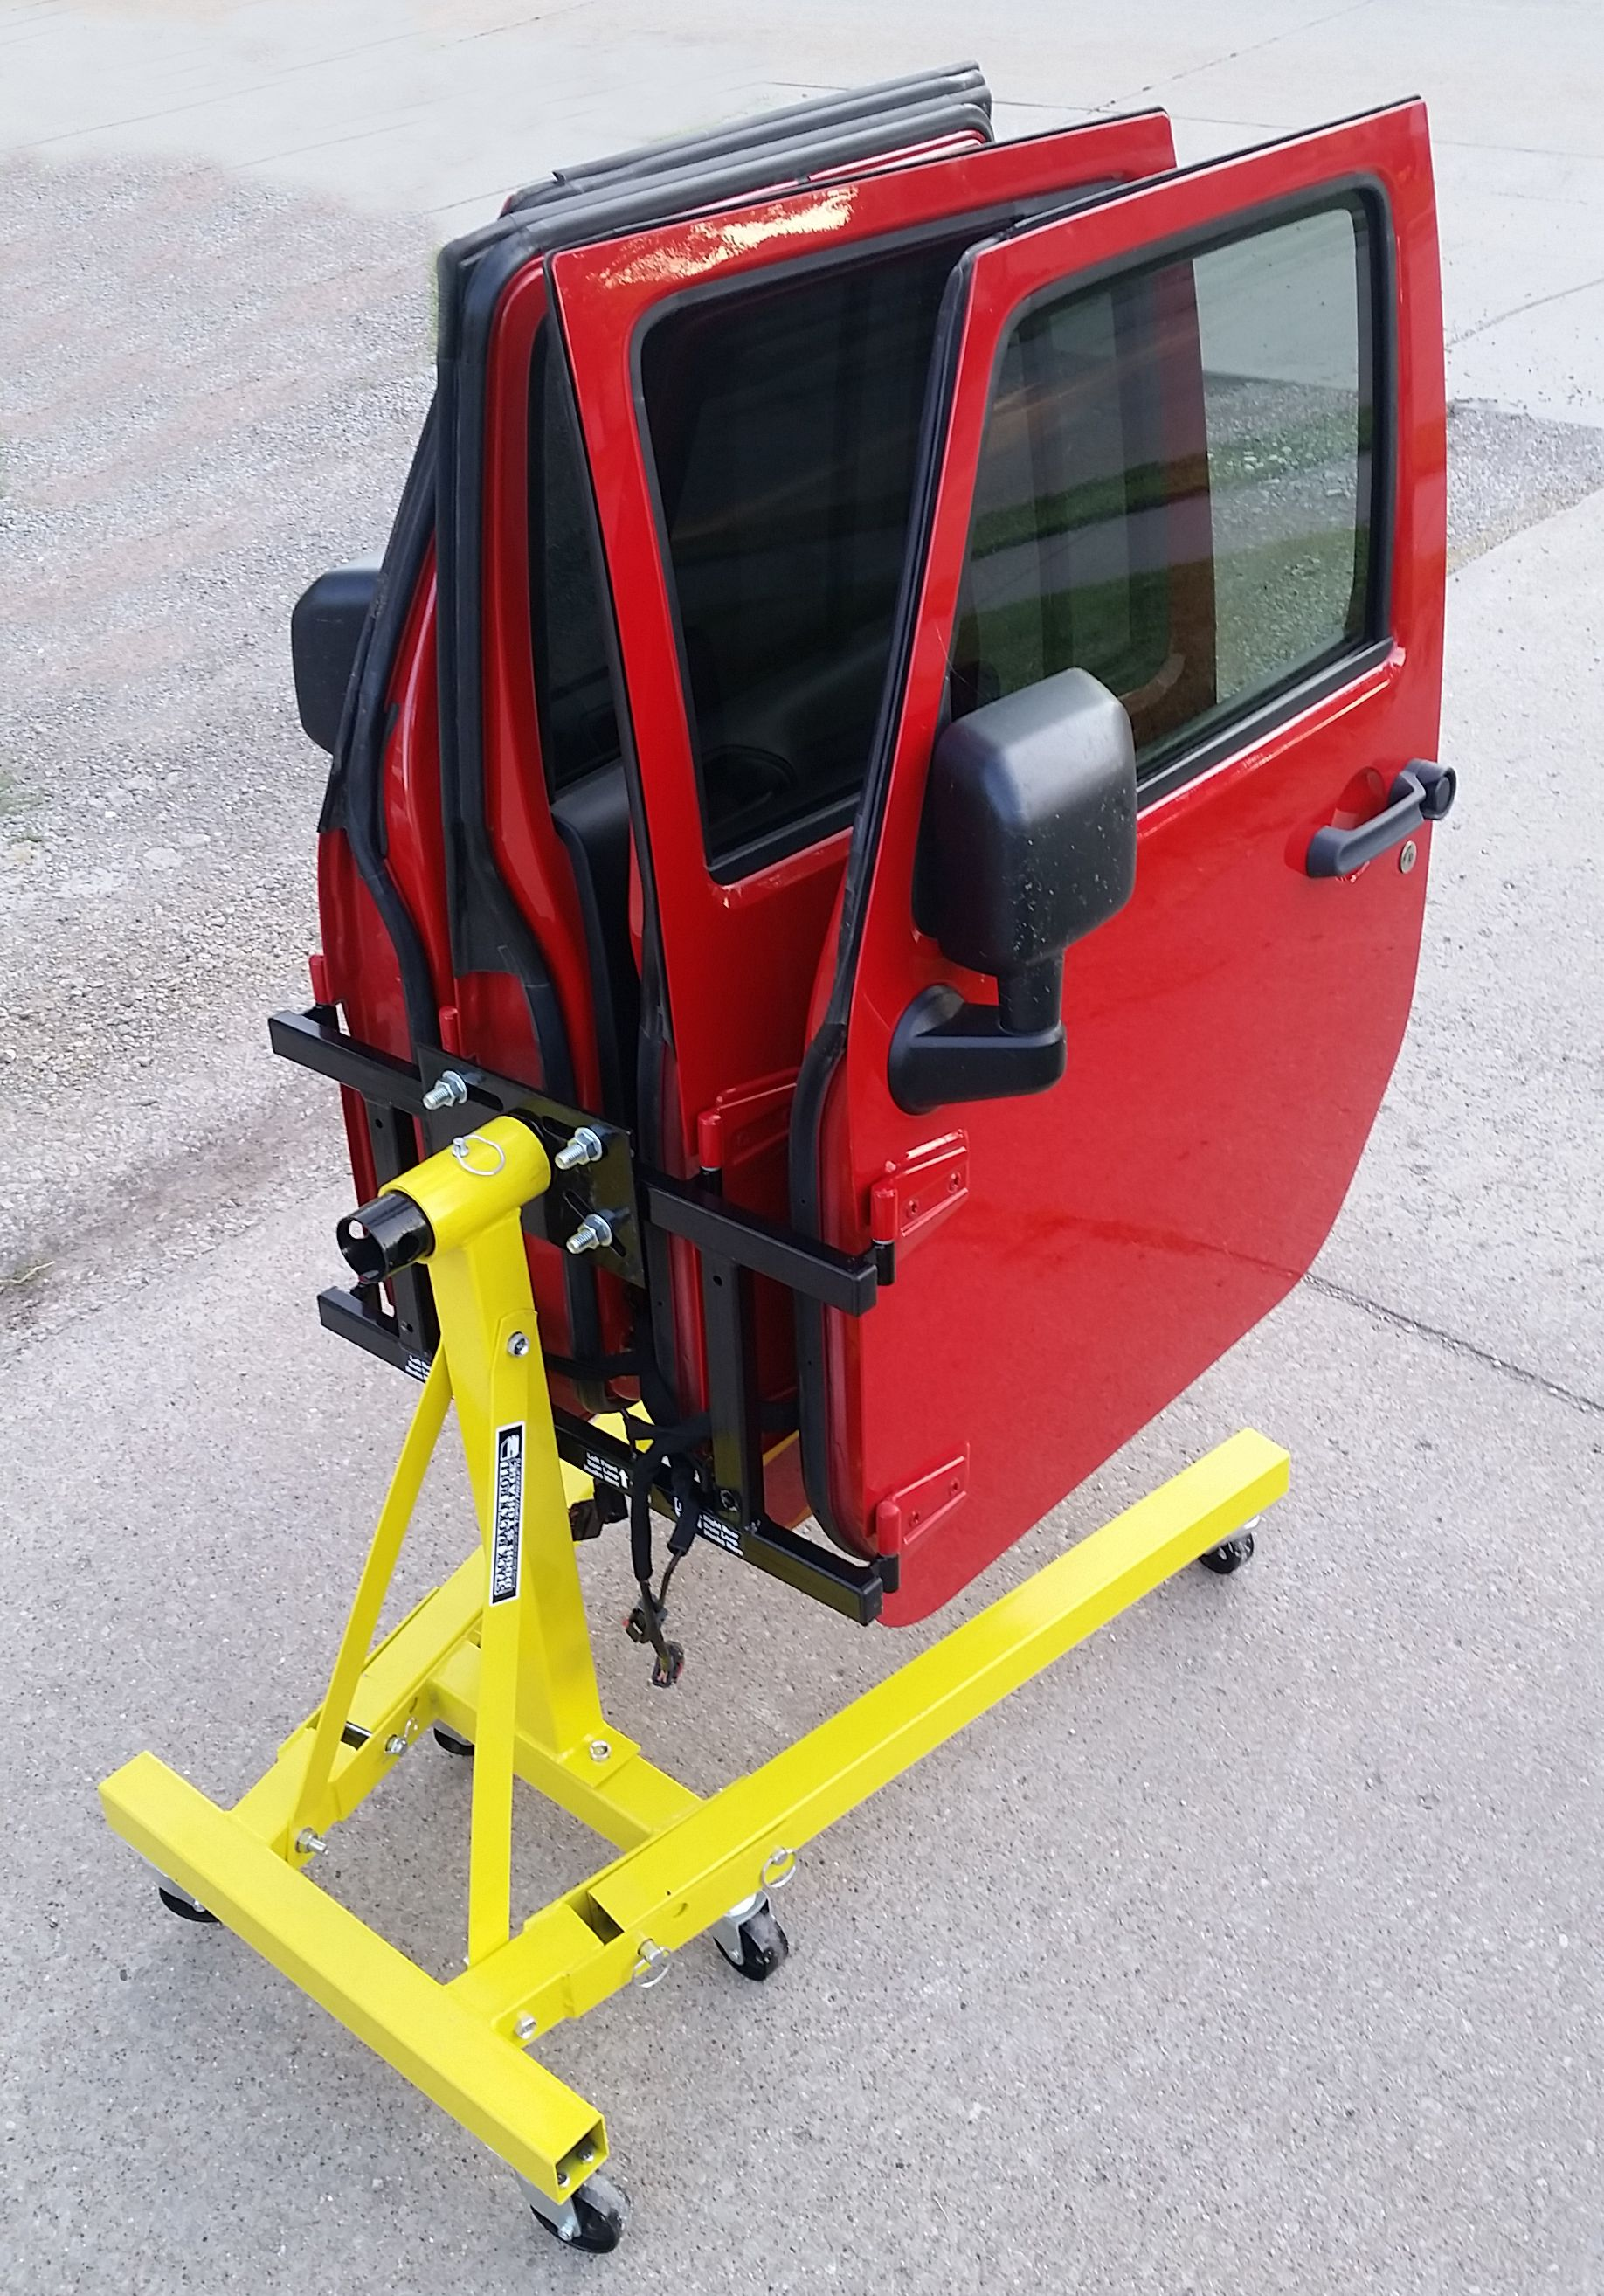 The Stack Rack Roll Door Storage System From Topsy Products It Turns An Engine Stand Into A Mobile Doo Jeep Doors Jeep Wrangler Doors Jeep Hardtop Storage